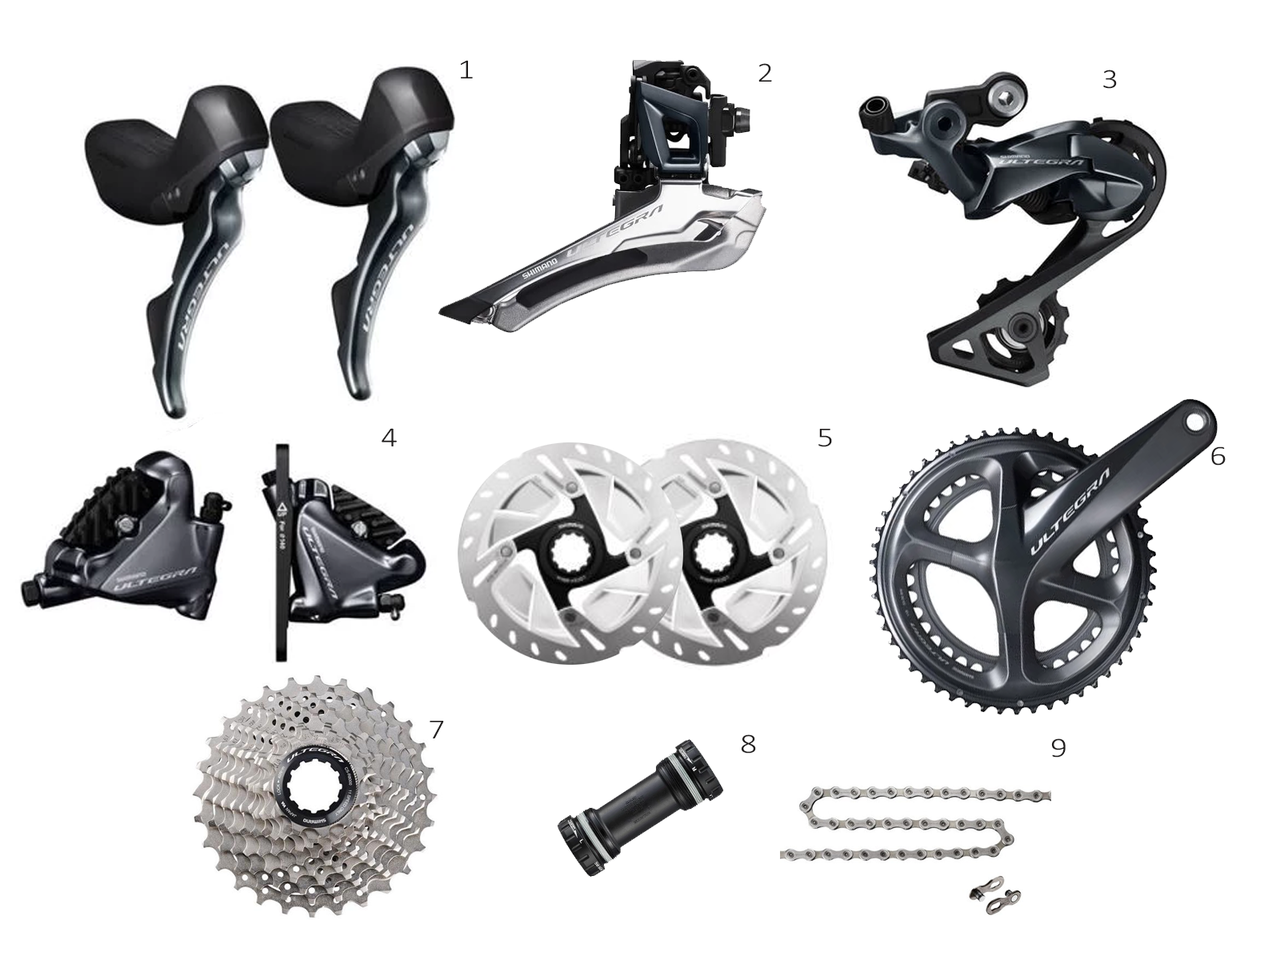 Shimano Ultegra R8020 Mechanical Hydro Disc Brake Groupset